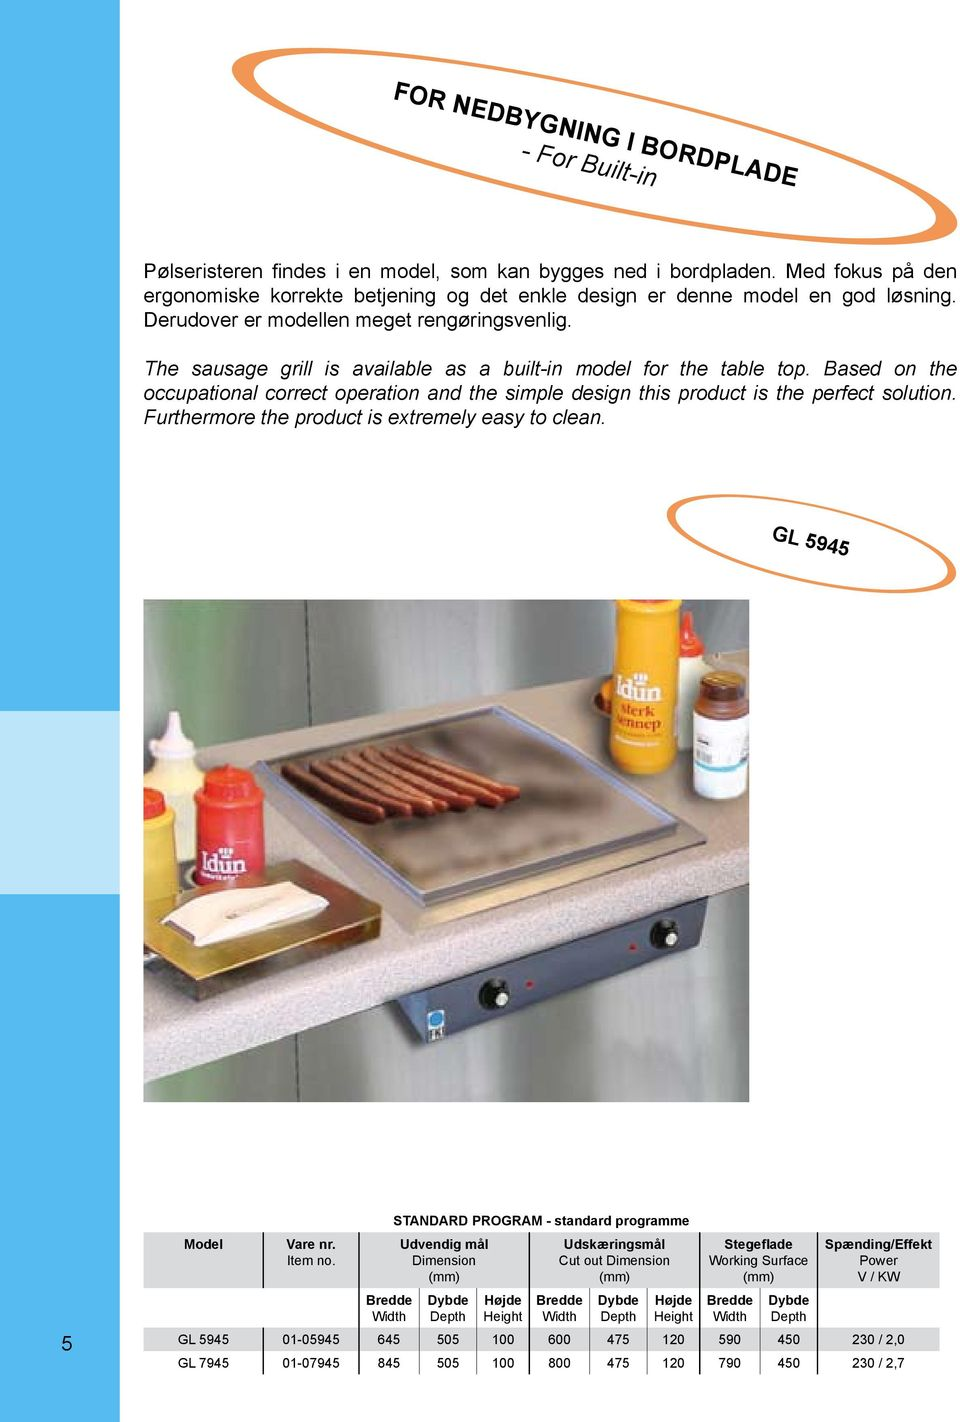 The sausage grill is available as a built-in model for the table top.